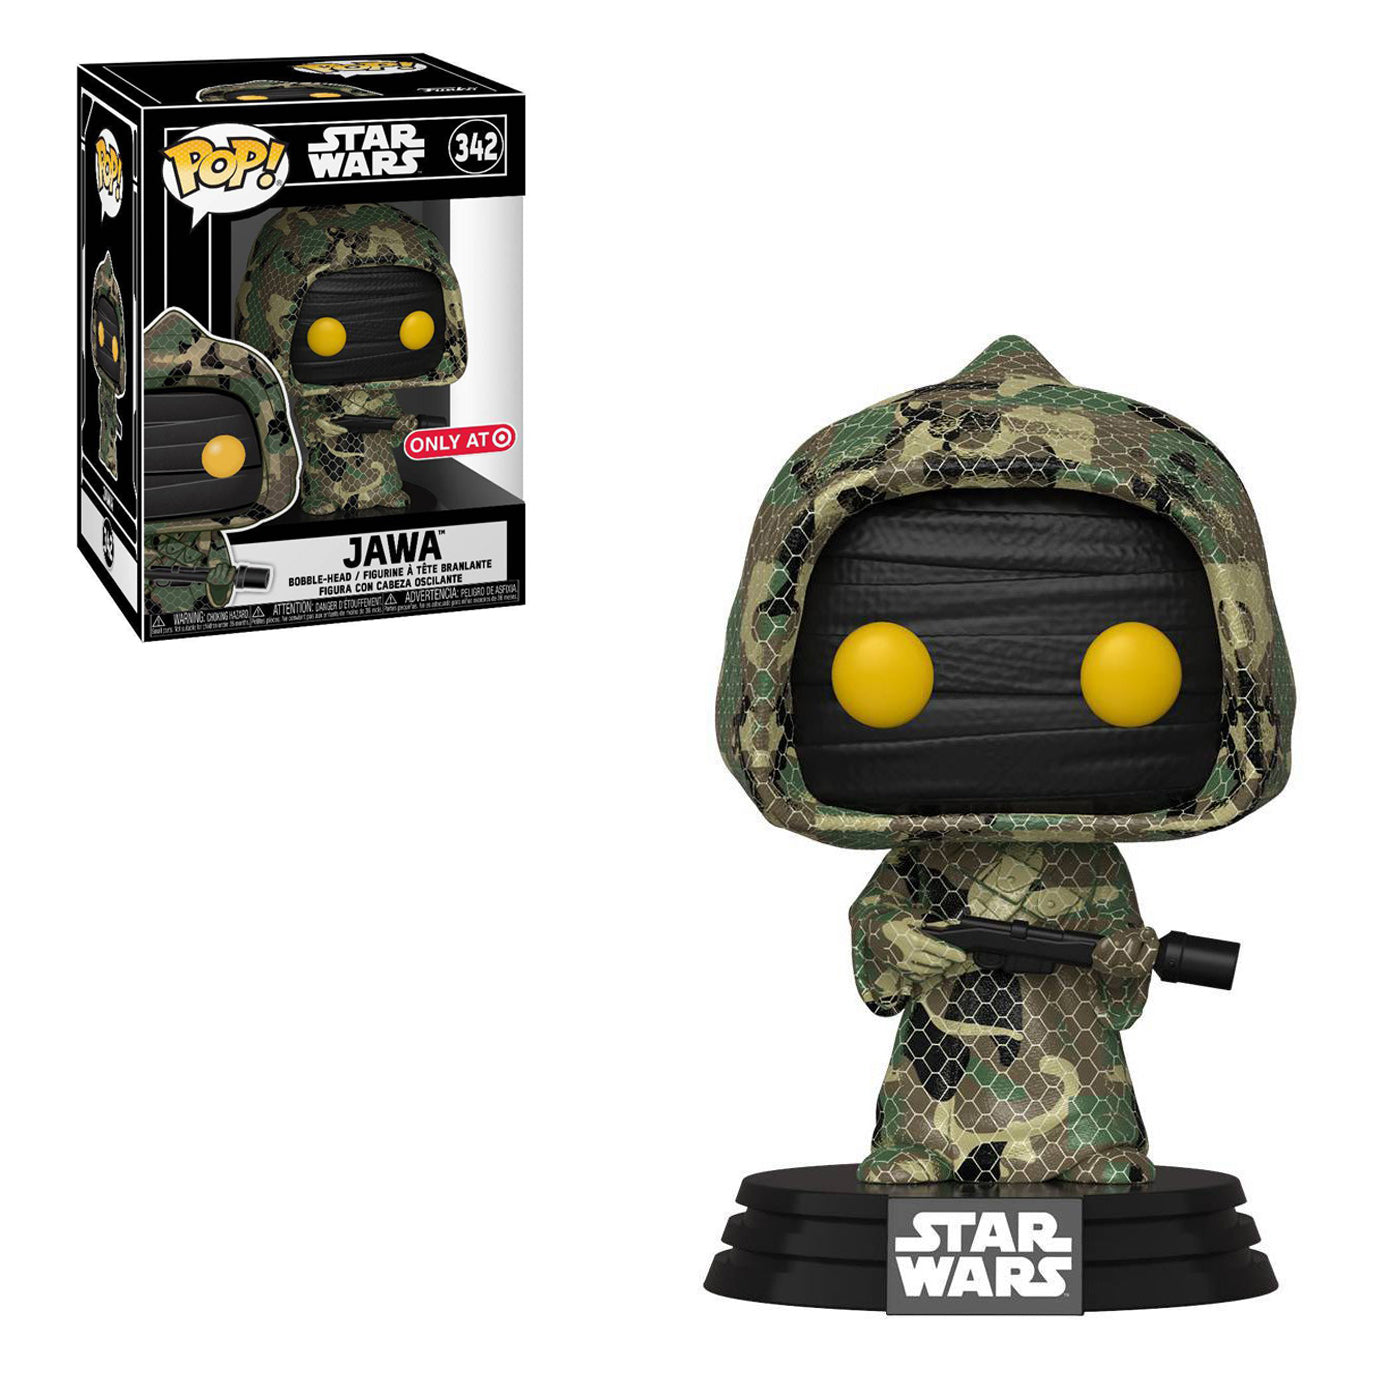 Star Wars Futura x Funko Jawa Exclusive